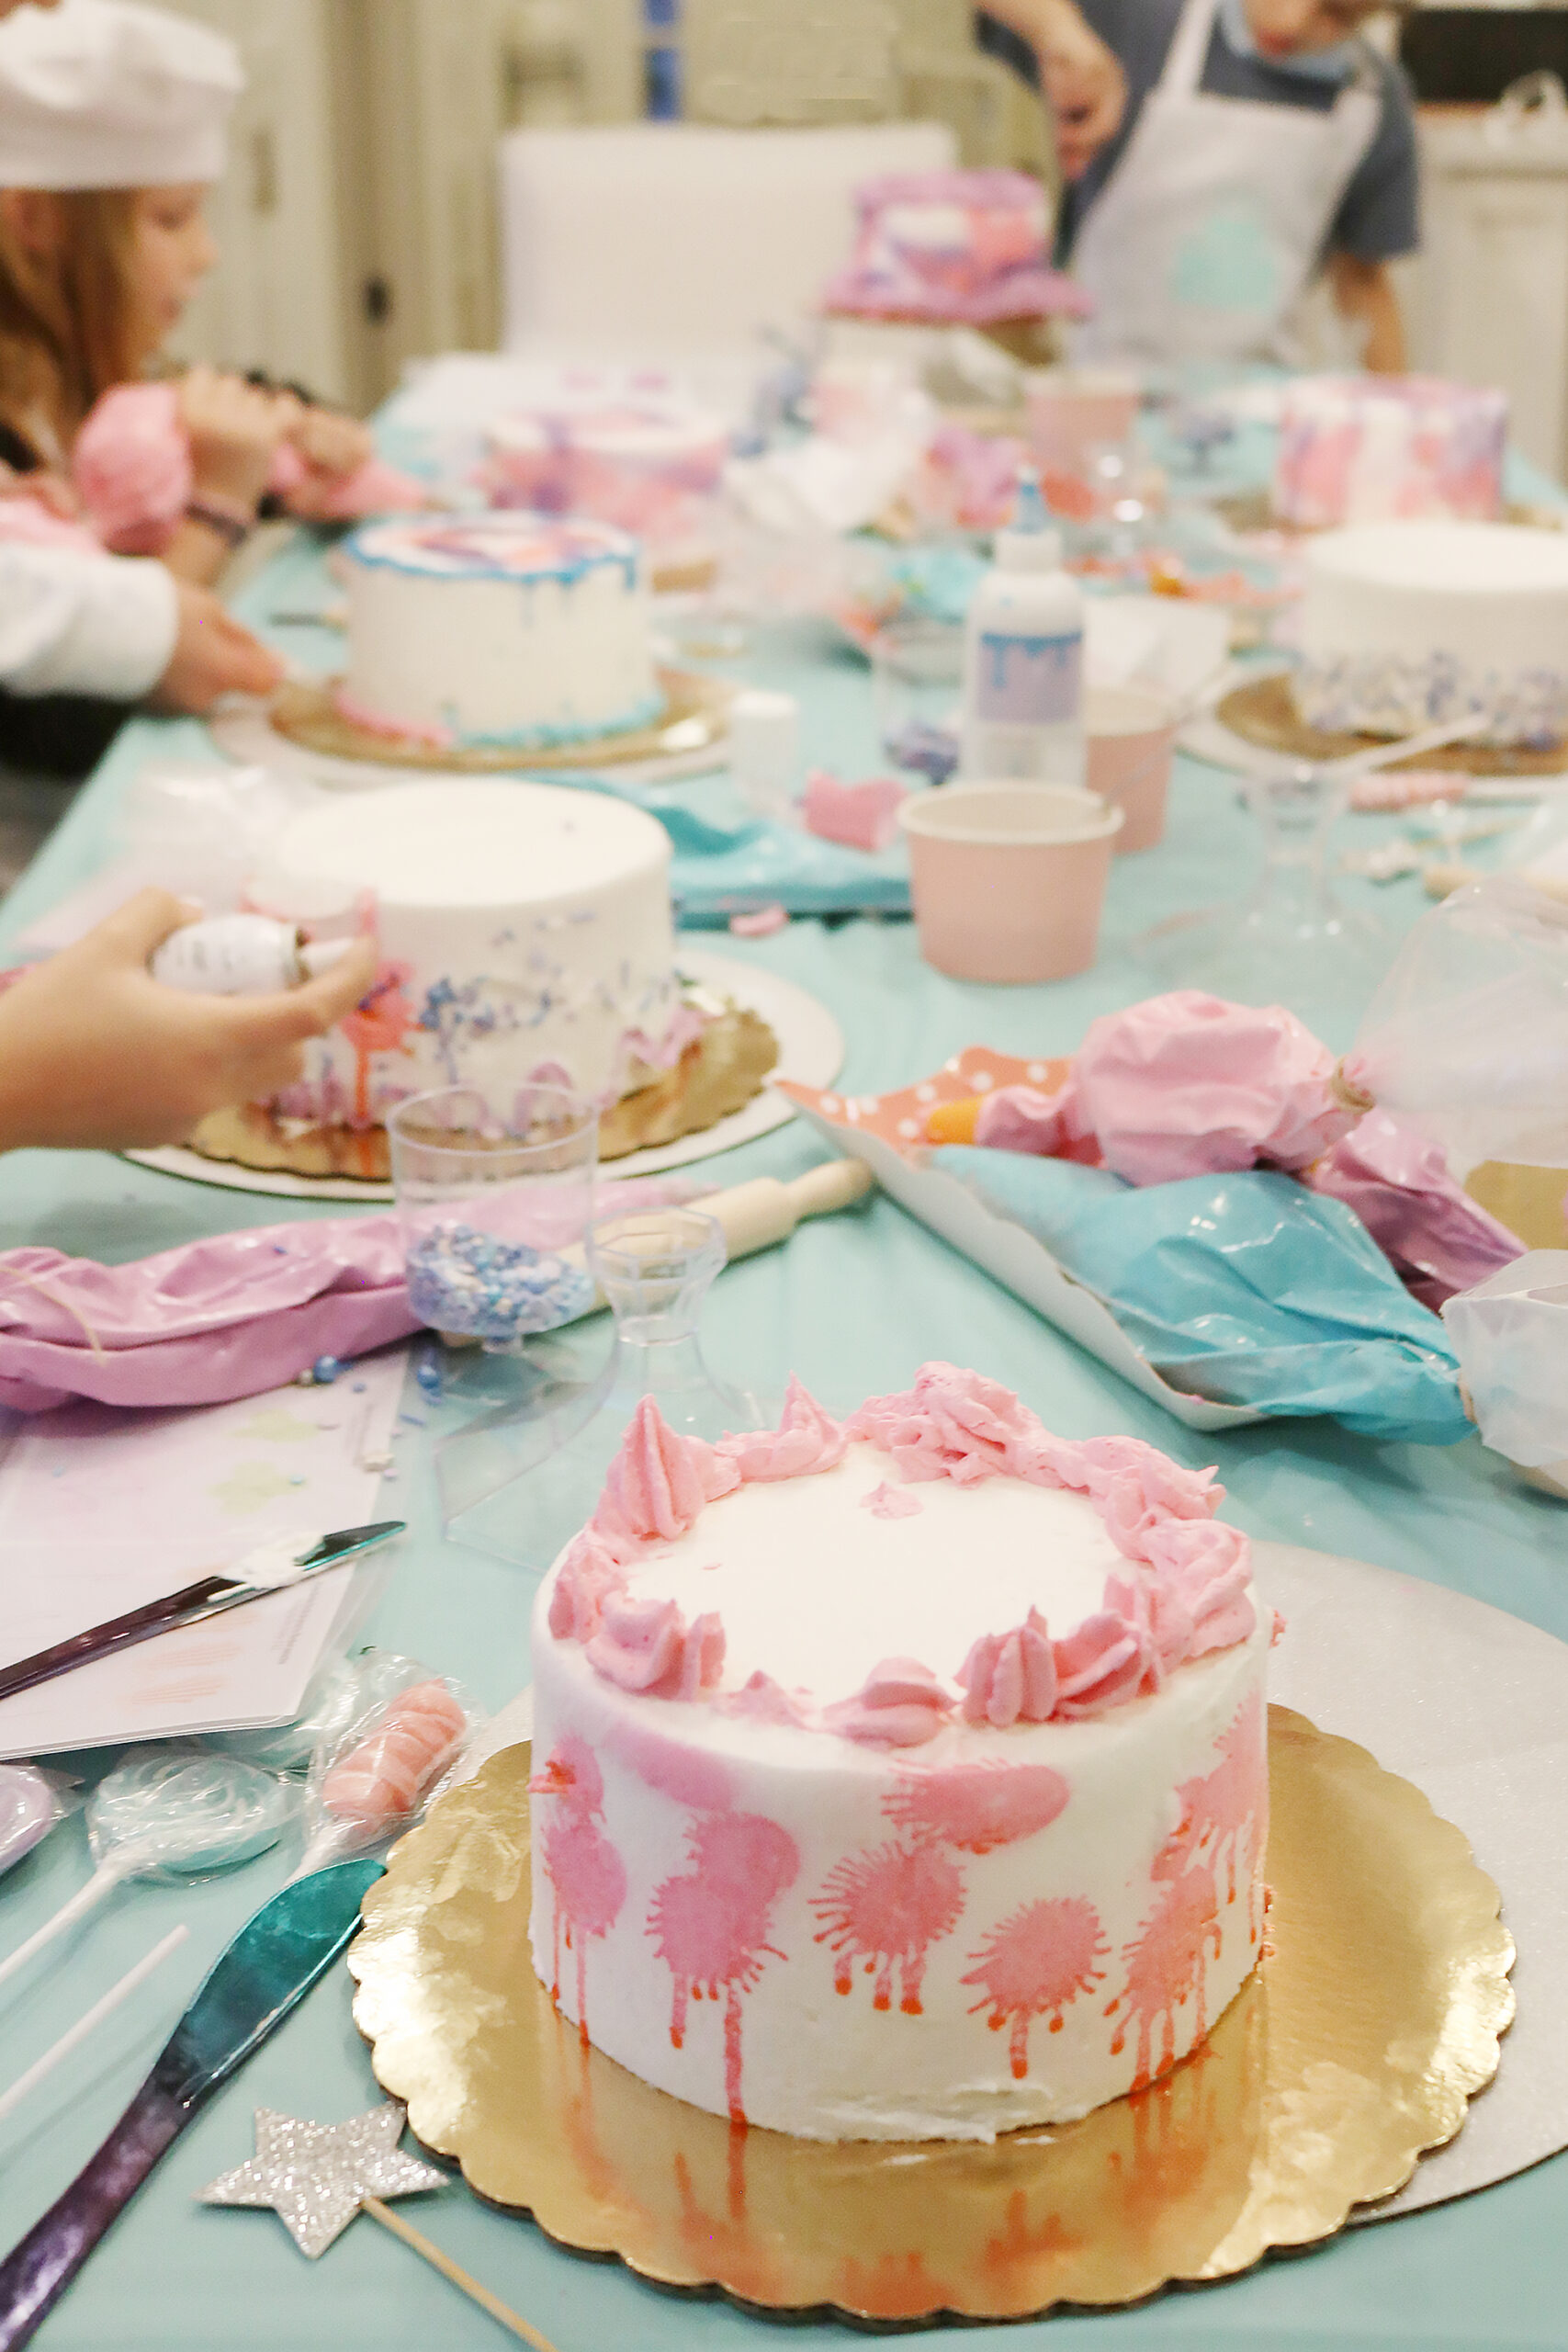 At-Home Cake Decorating Party--easy tips, techniques, supplies and lots of sweets!  You don't have to be a cake decorator to make a pretty cake!     Darling Darleen Top Lifestyle Blogger #darlingdparties #darlingdarleen #cakedecorating